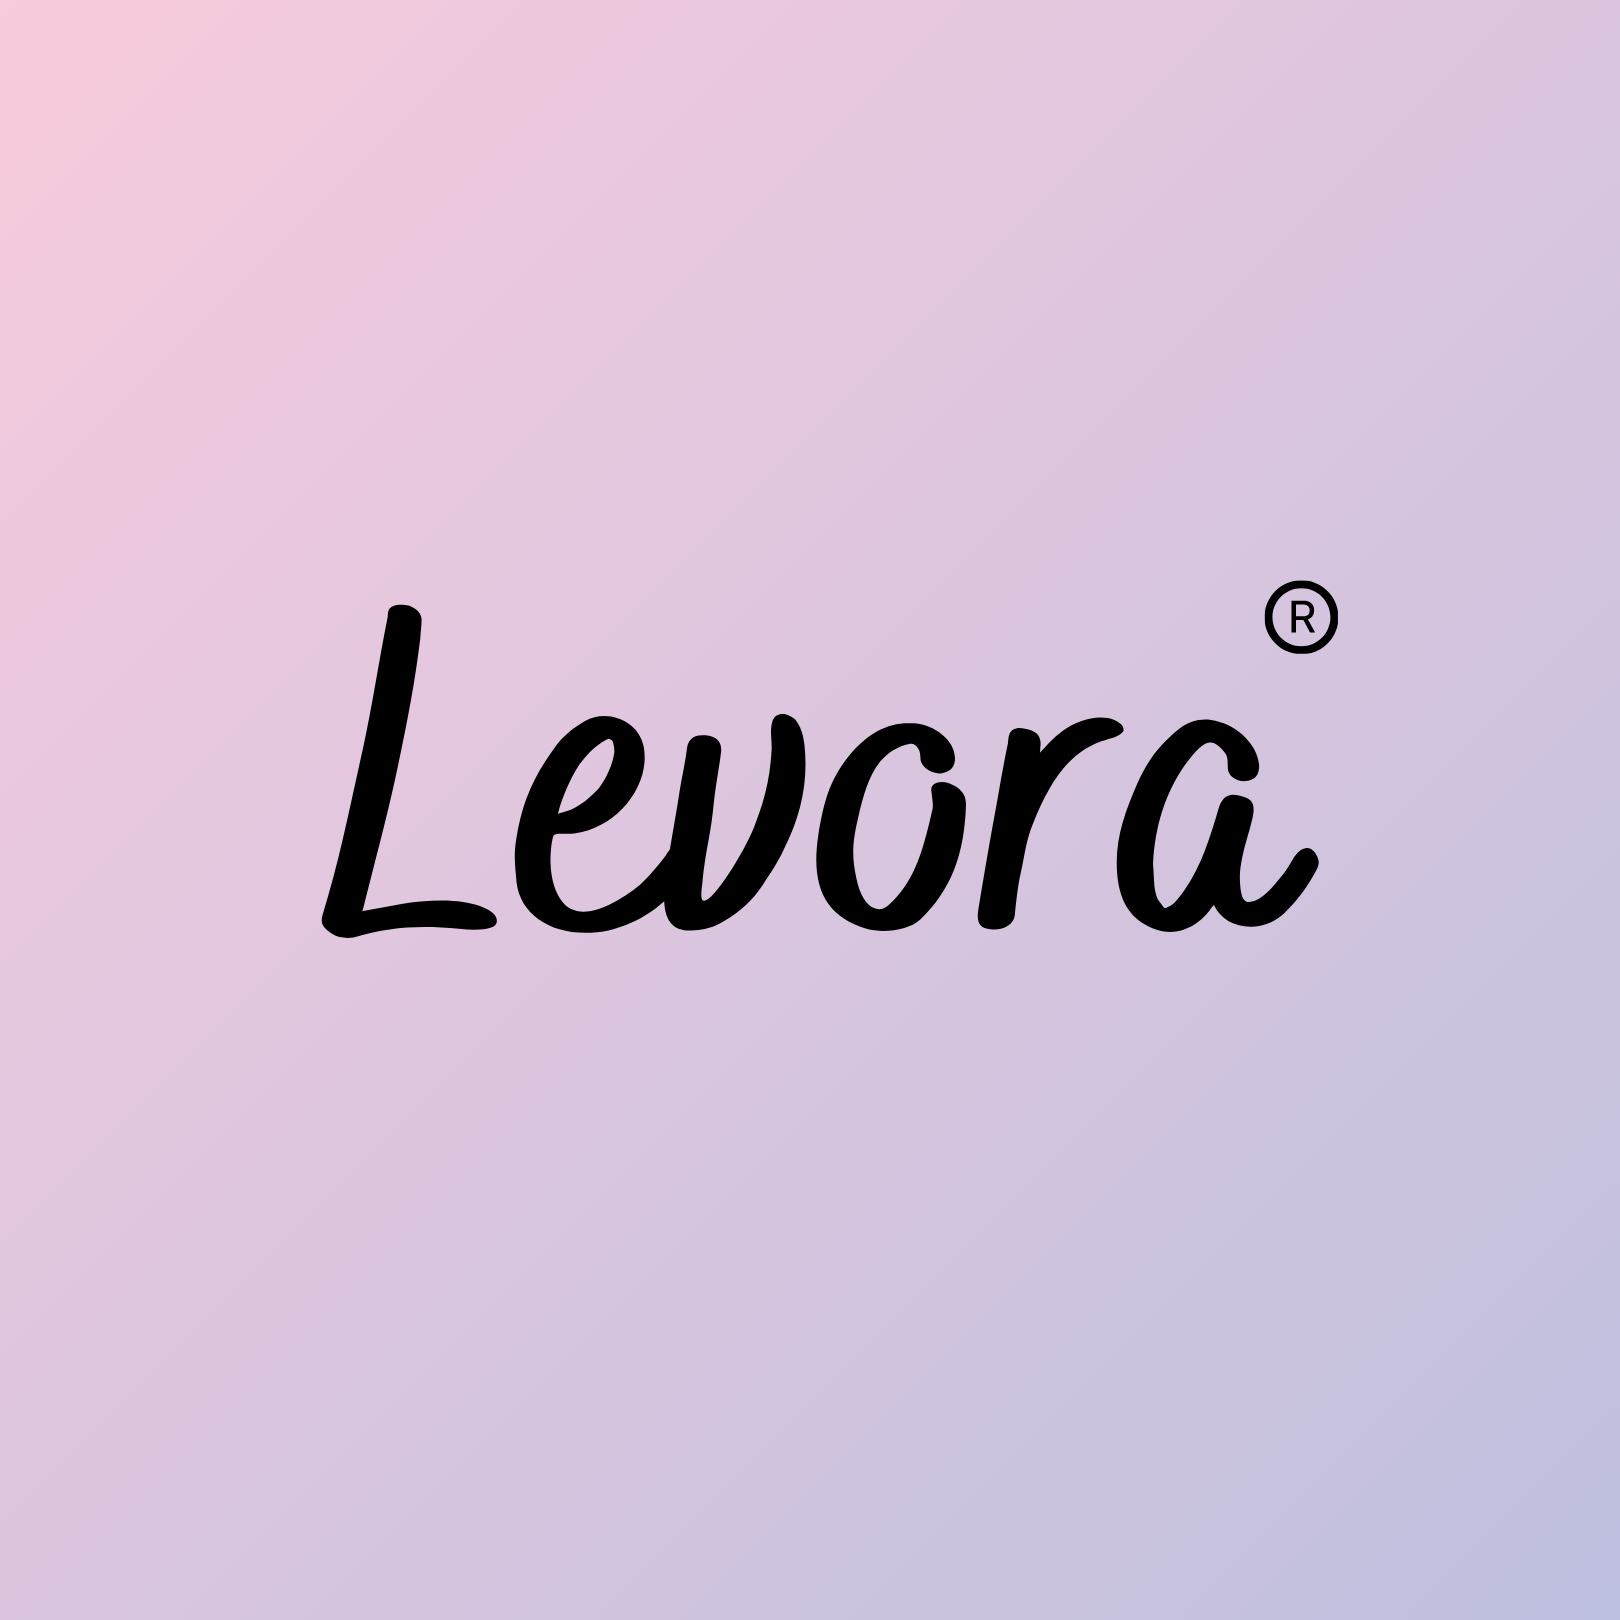 Buy Levora birth control online at hellowisp.com